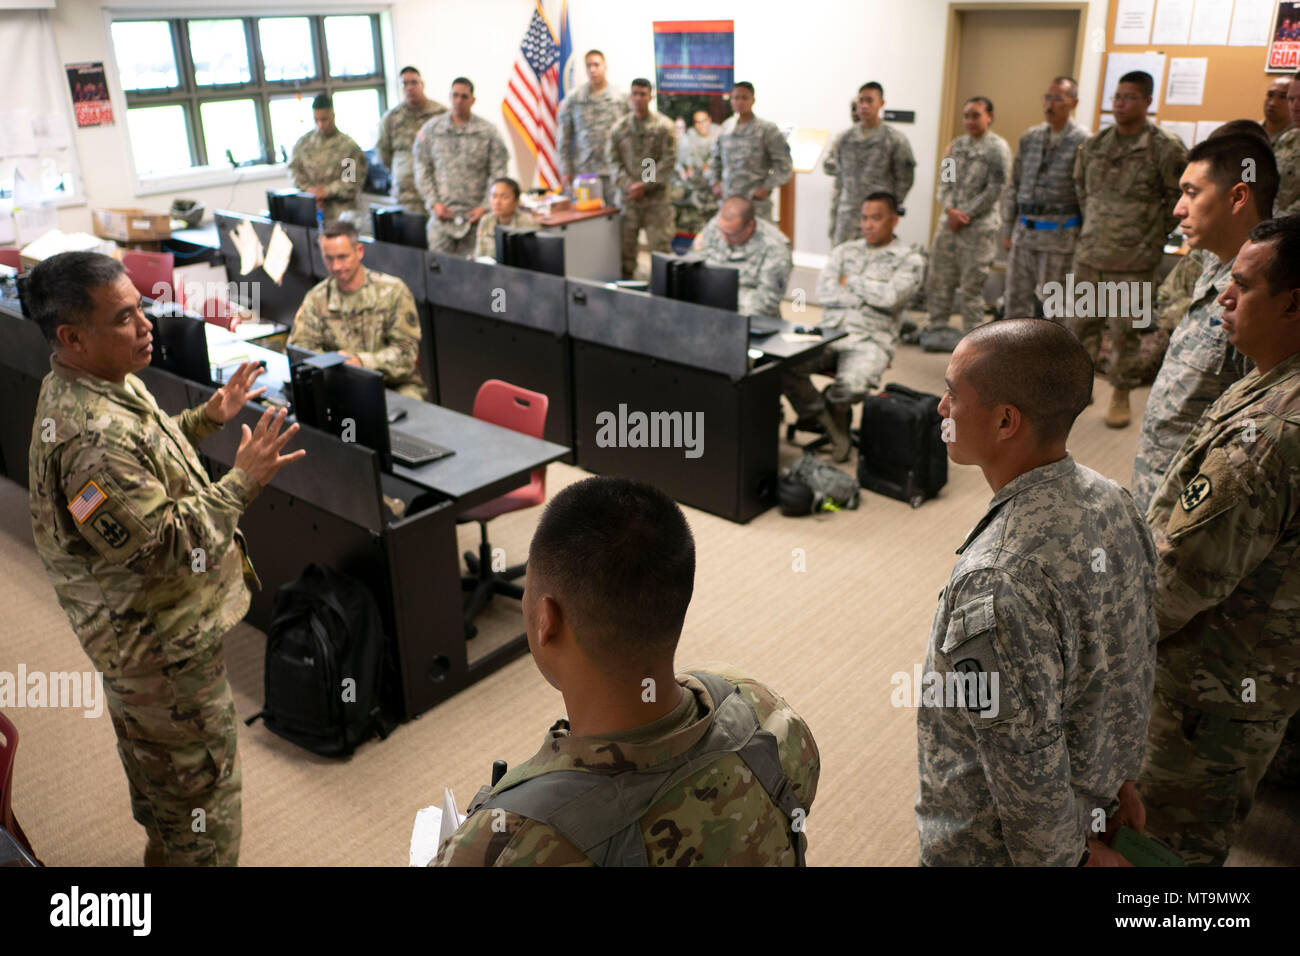 Lt. Col. Shawn Tsuha, Task Force Hawaii commander, addresses his growing team of guardsmen May 16, 2018, at the Joint Operations Center, Hilo, Hawaii. The unit is working alongside with civilian and active duty counterparts under the command of Joint Task Force 5-0 in response to the ongoing volcanic activity on Hawaii Island. (U.S. Air National Guard photo by Senior Airman John Linzmeier) - Stock Image